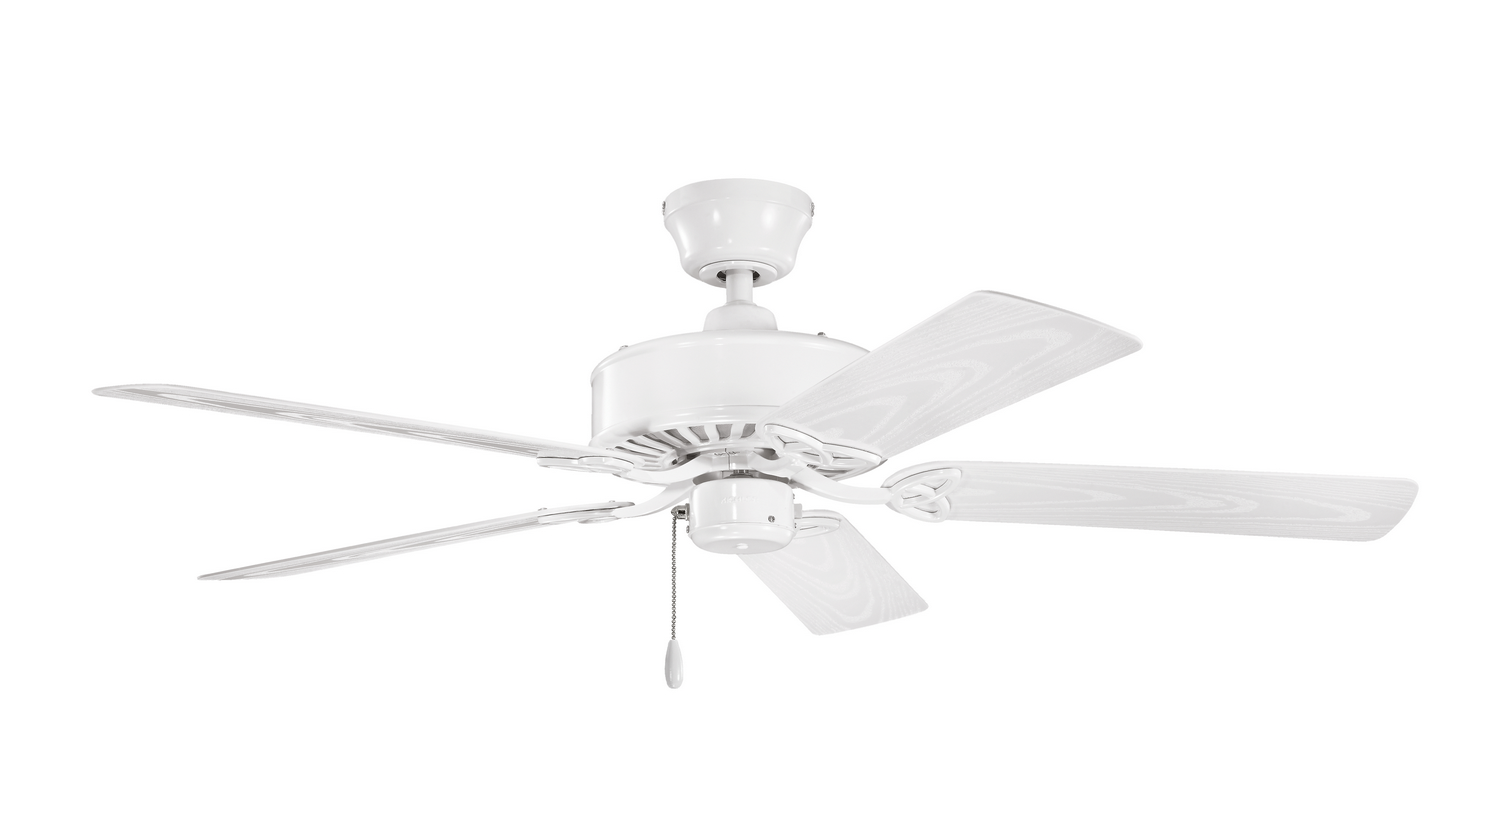 52 inchCeiling Fan from the Renew Patio collection by Kichler 339515WH